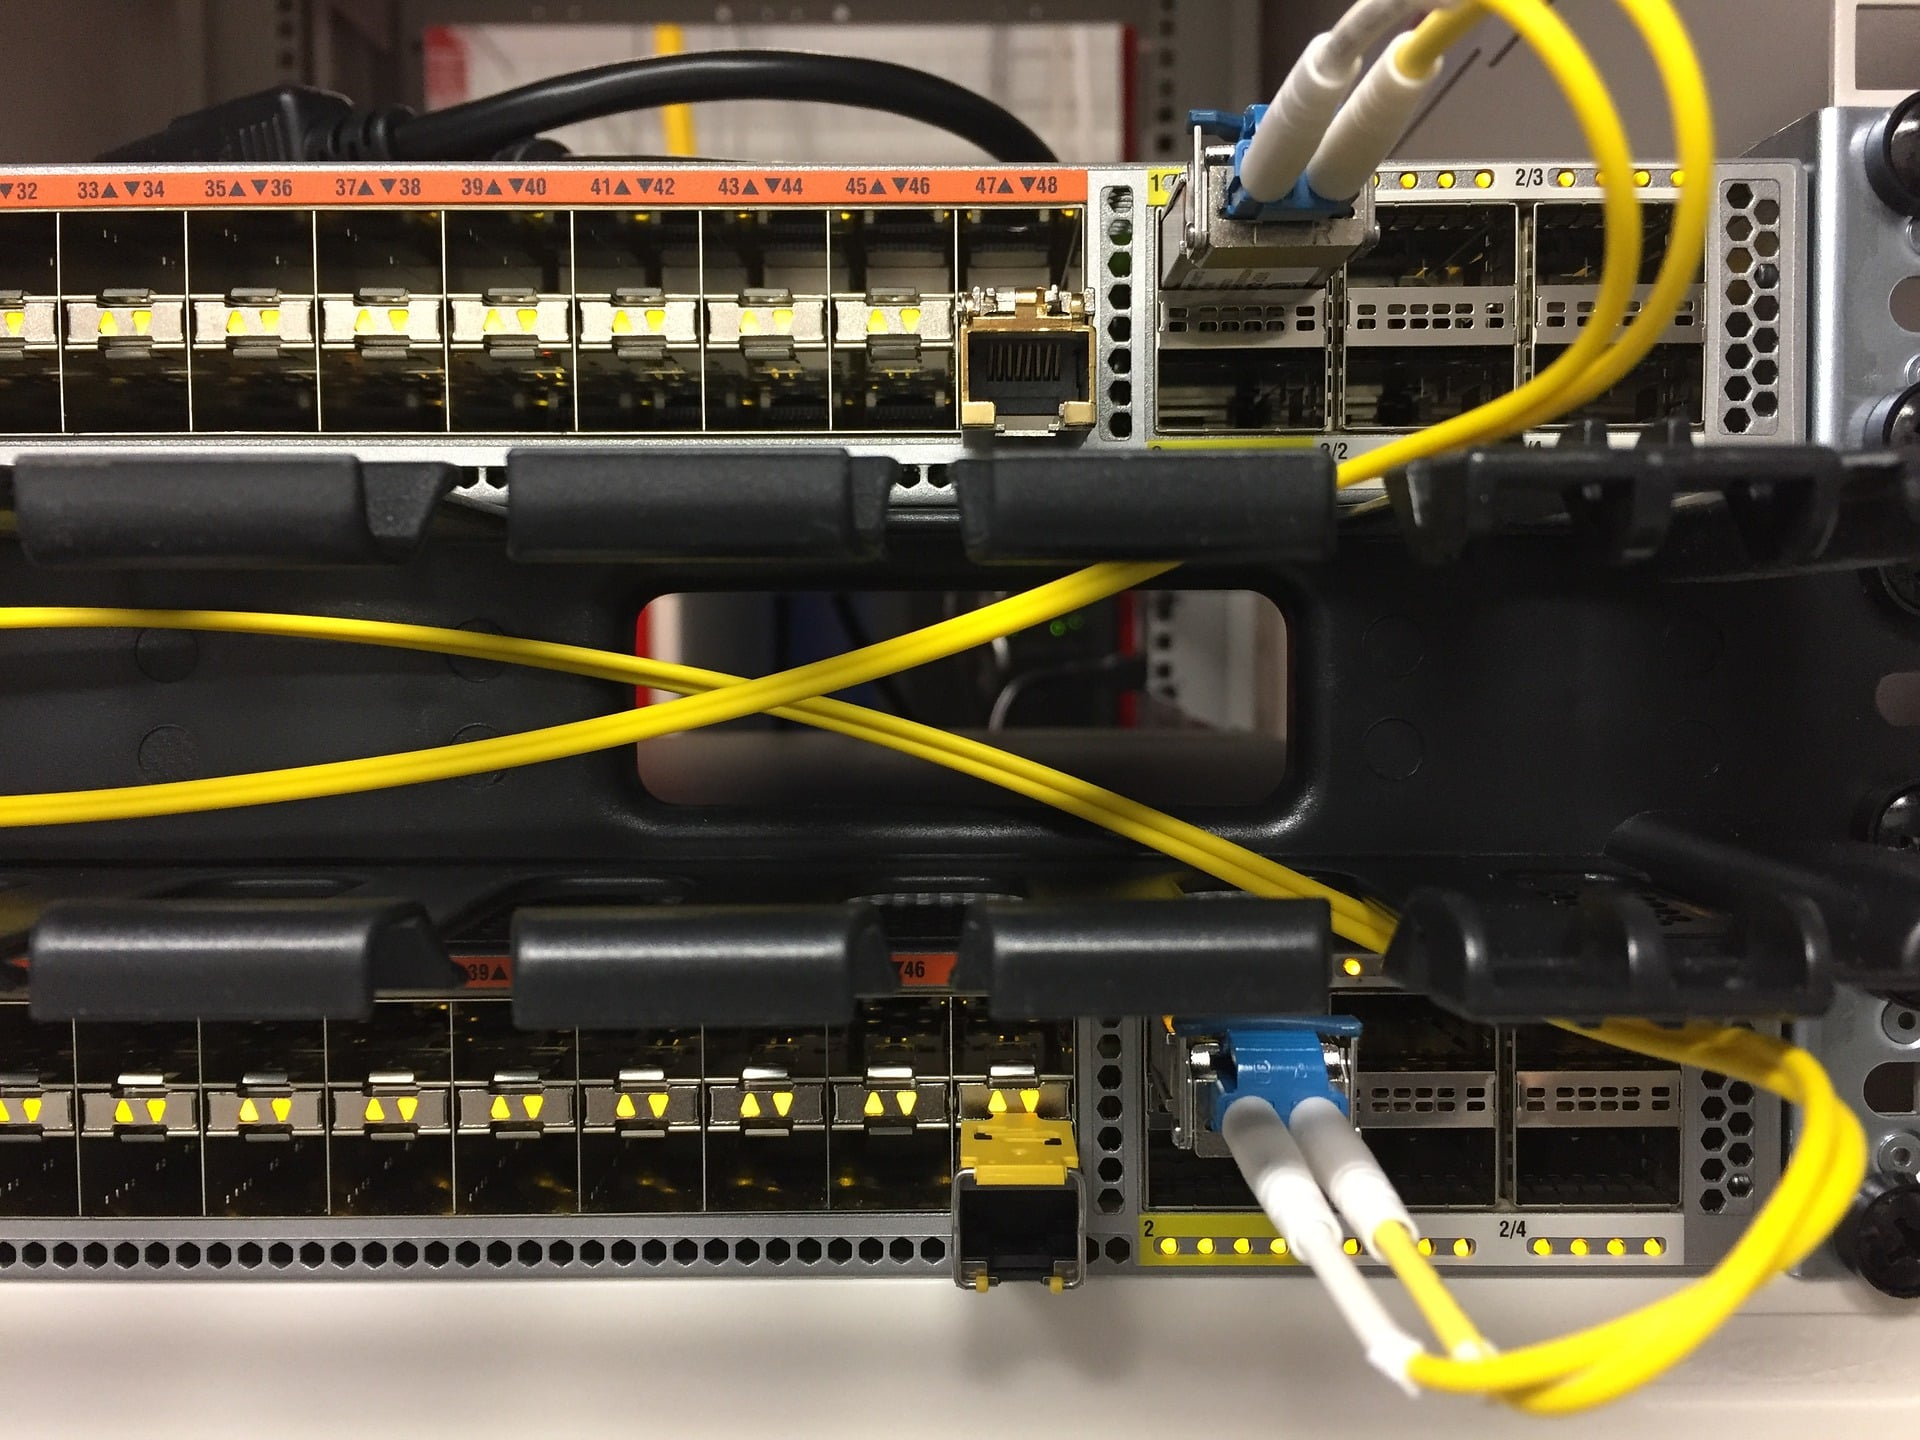 switch for servers